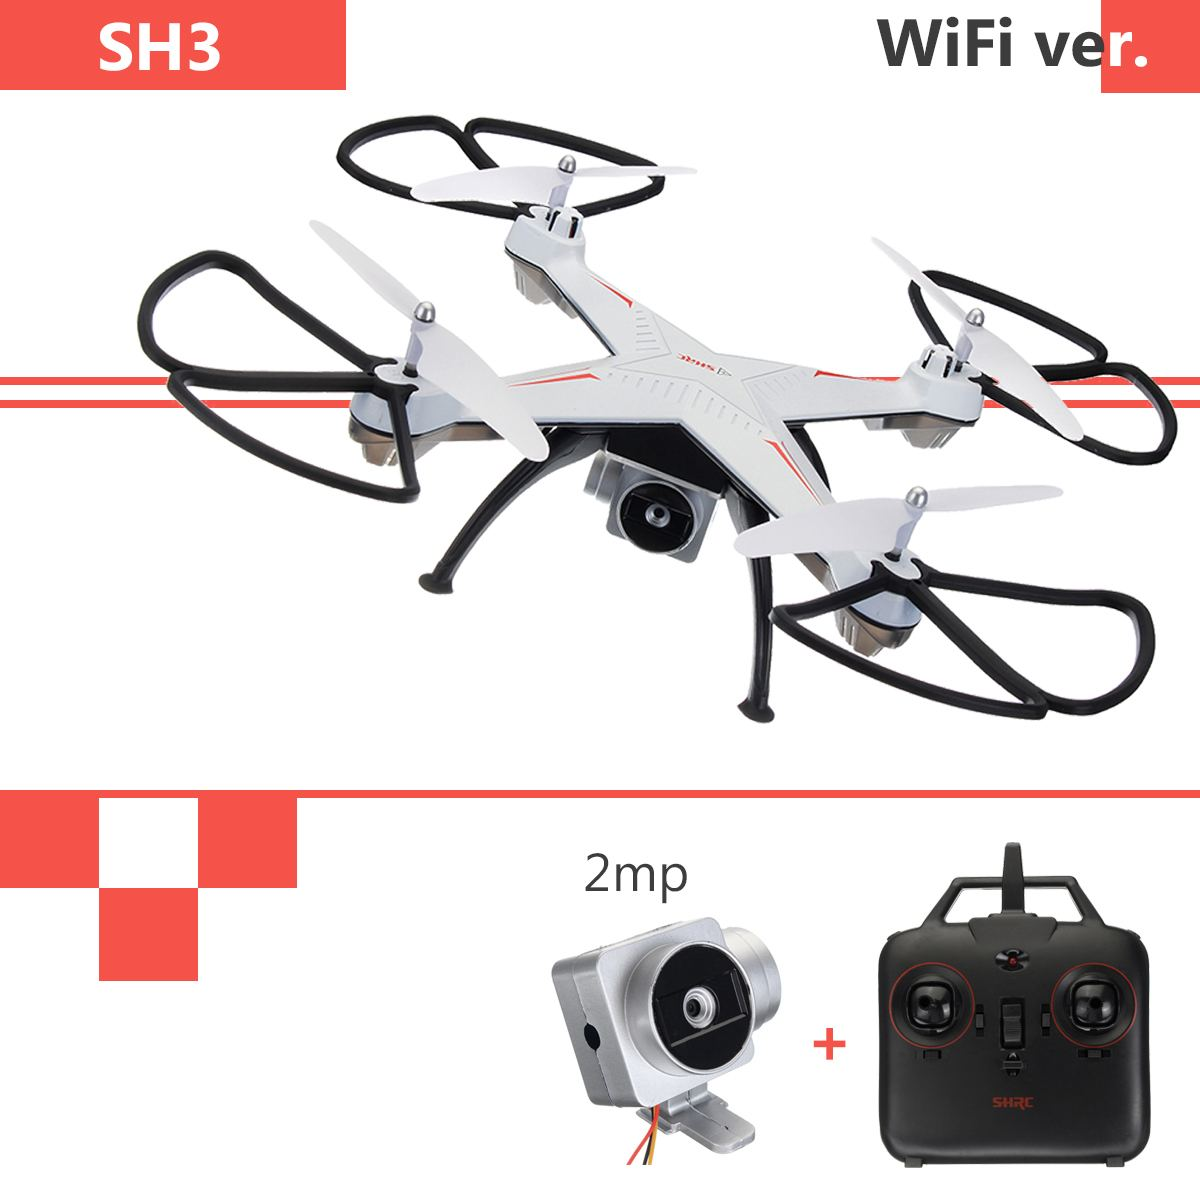 Camera Drones SH3 Helicopter 2.4GHz 4CH 6 Axis Drone 2.0MP HD Camera Quadcopter Aircraft for Kids Gift White Black Gold colorCamera Drones SH3 Helicopter 2.4GHz 4CH 6 Axis Drone 2.0MP HD Camera Quadcopter Aircraft for Kids Gift White Black Gold color